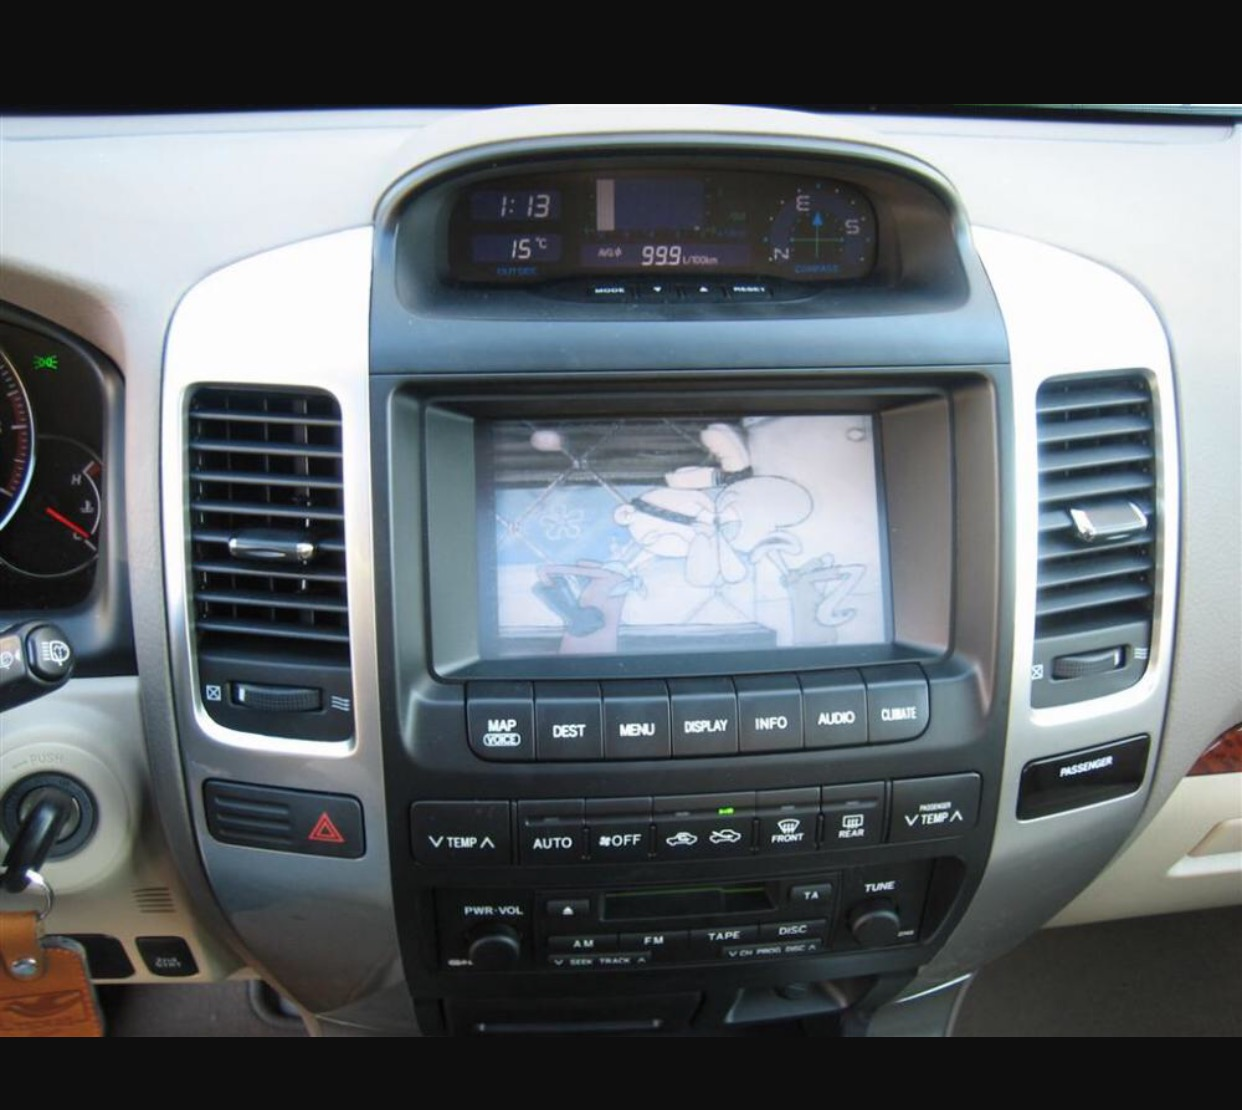 Replacing Oem Nav With Non Climate Controls And Aftermarket 2005 Lexus Land Cruiser Imagejpeg